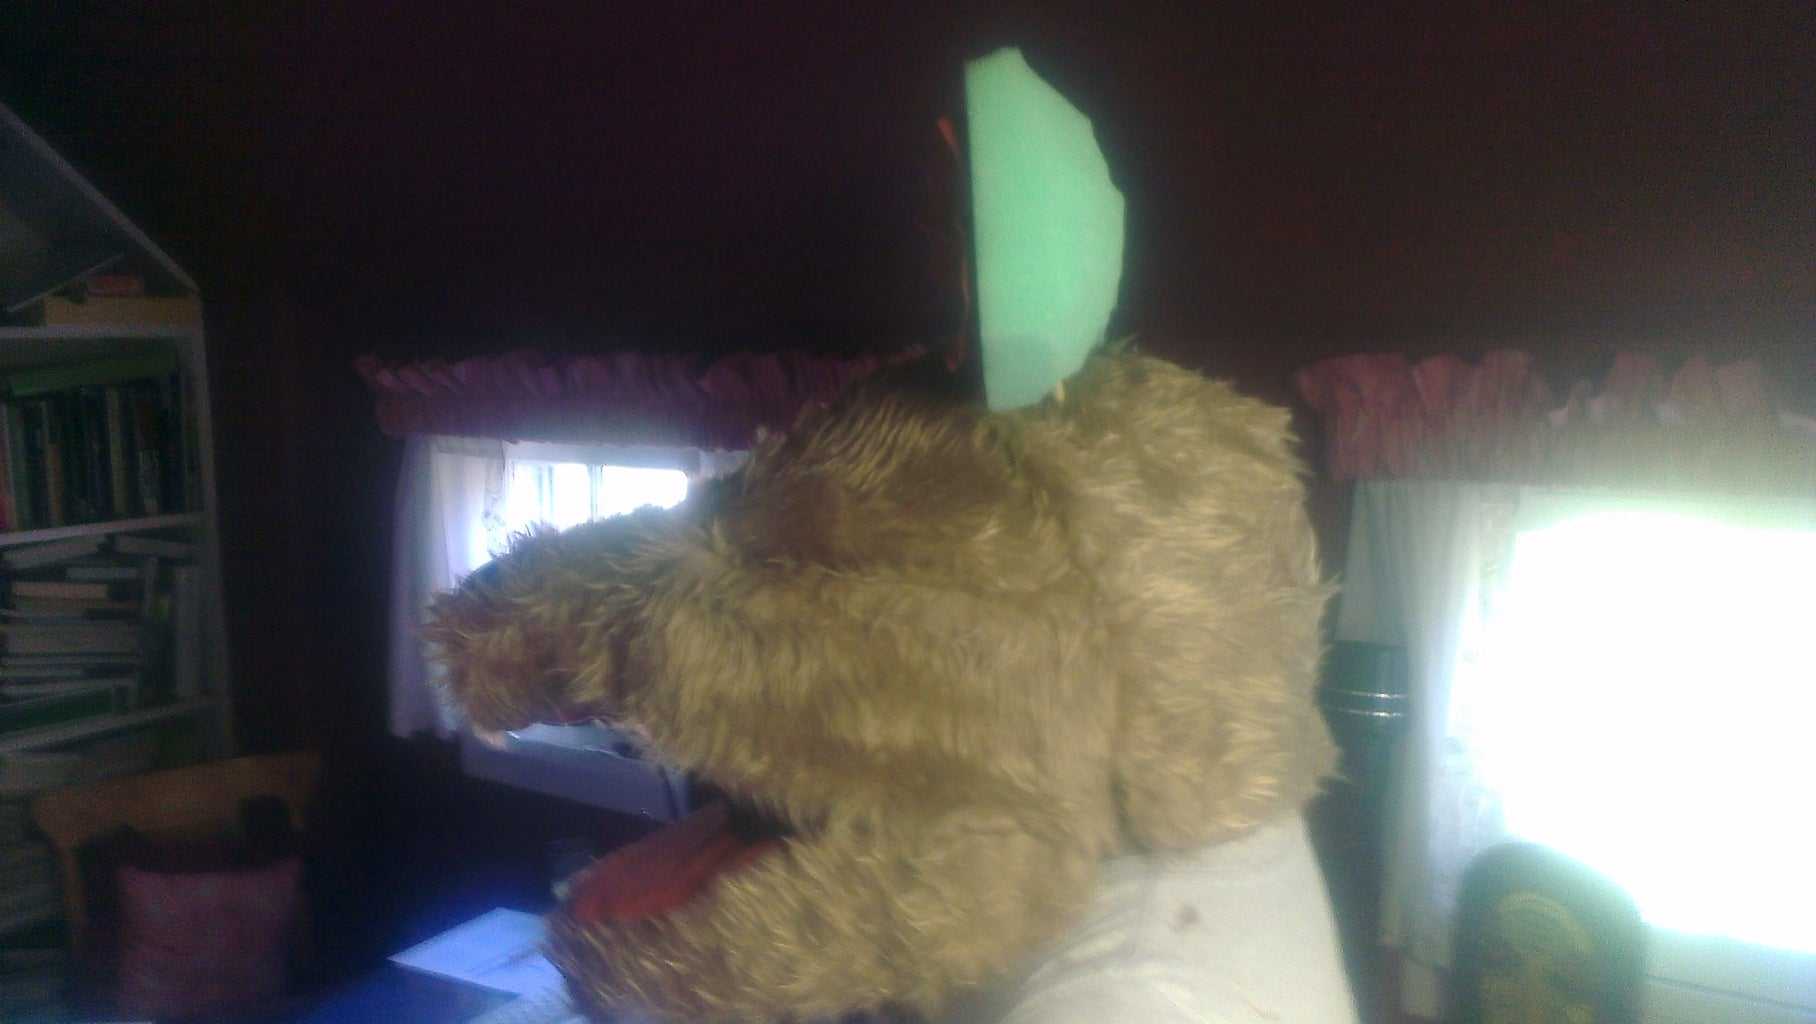 Covering the Headpiece - Snout